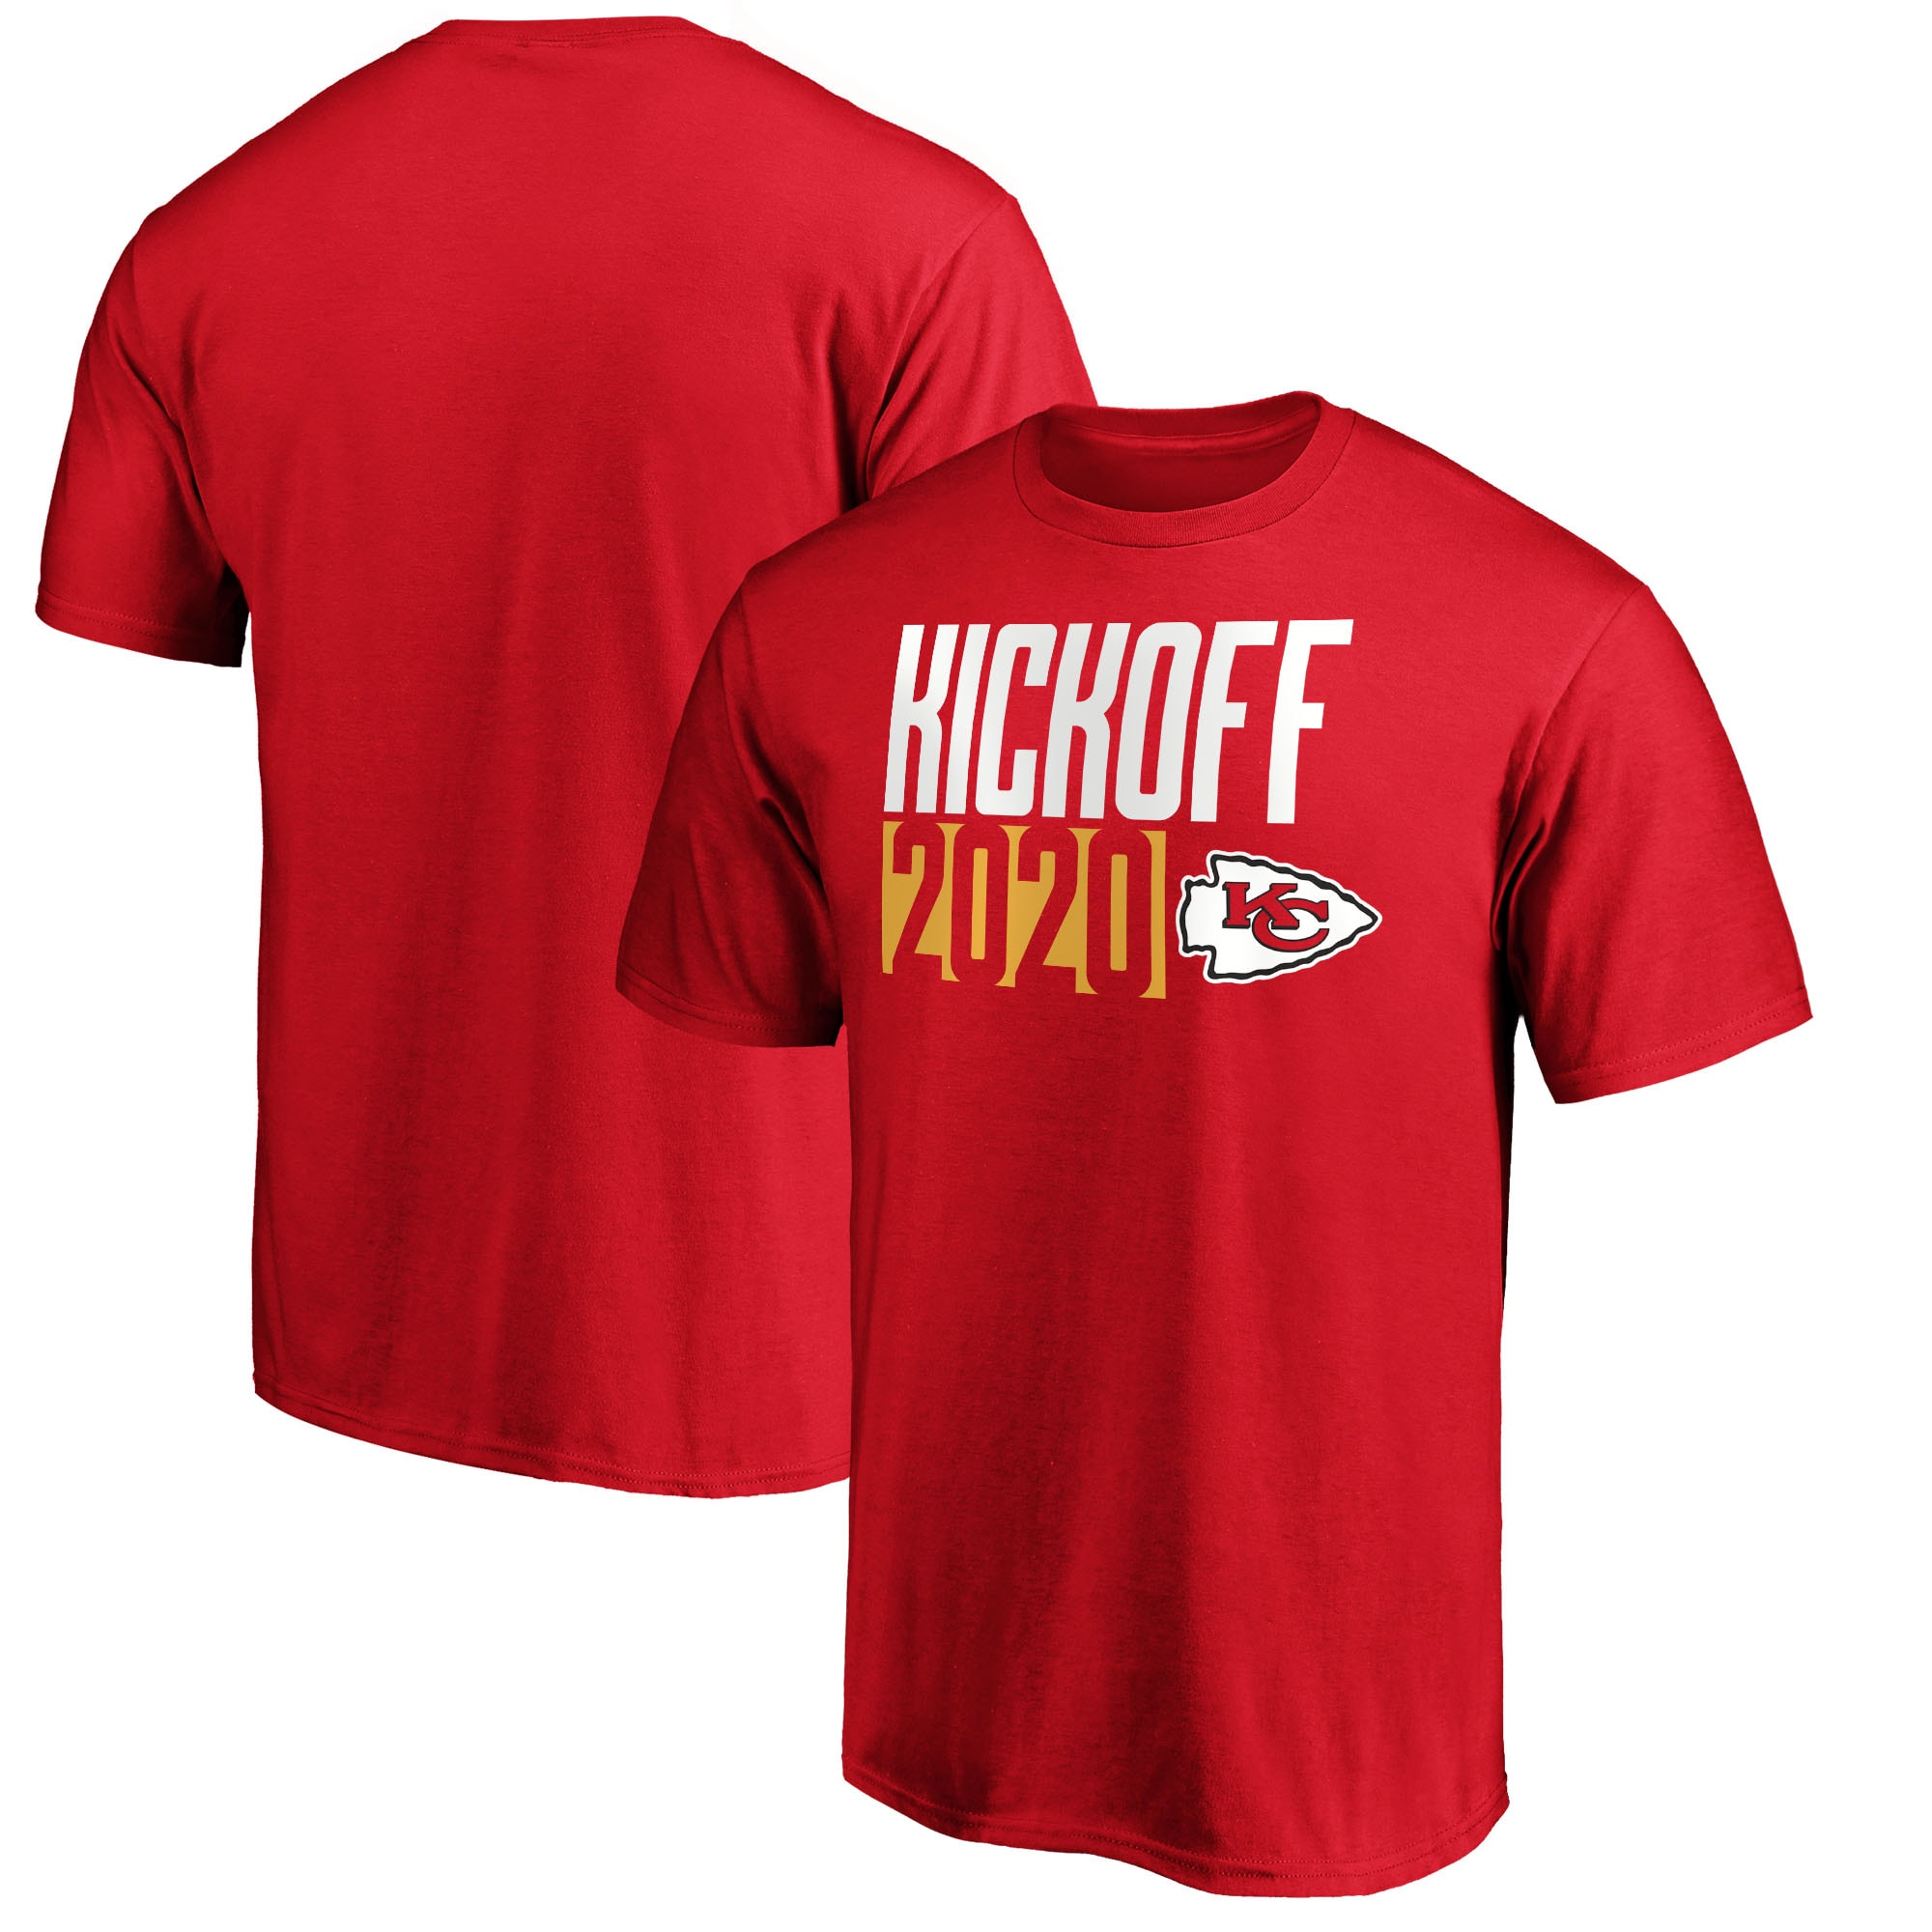 Kansas City Chiefs Fanatics Branded Kickoff 2020 T-Shirt - Red